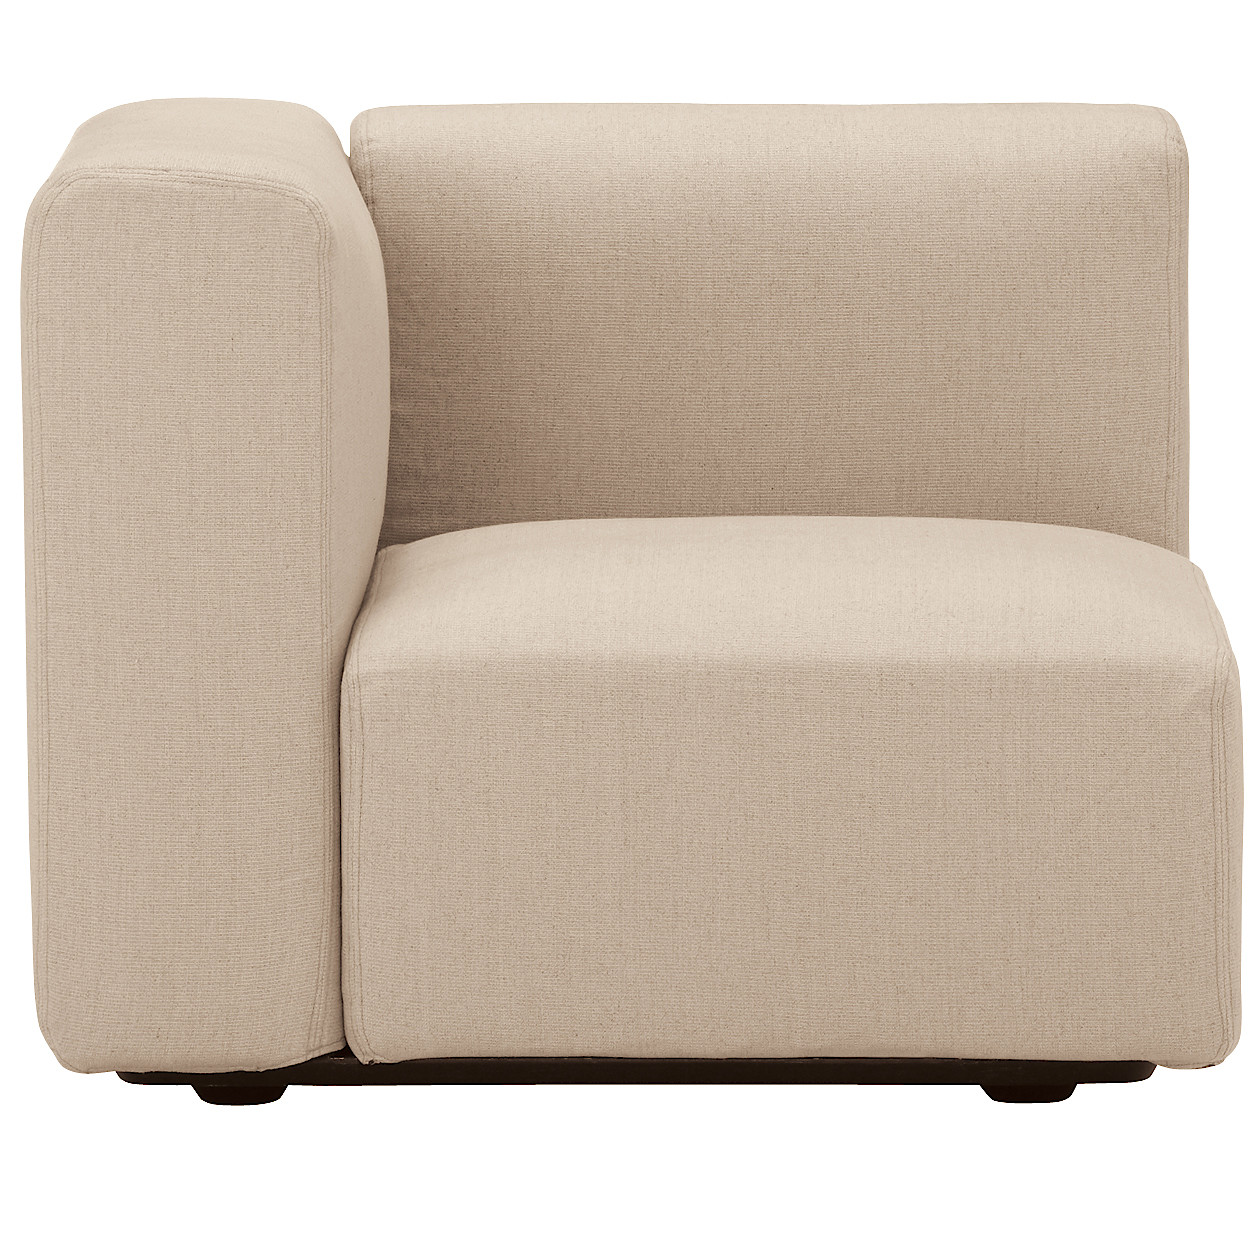 Groovy Unit Sofa With Armrest S W82 D82 H66Cm Muji Bralicious Painted Fabric Chair Ideas Braliciousco